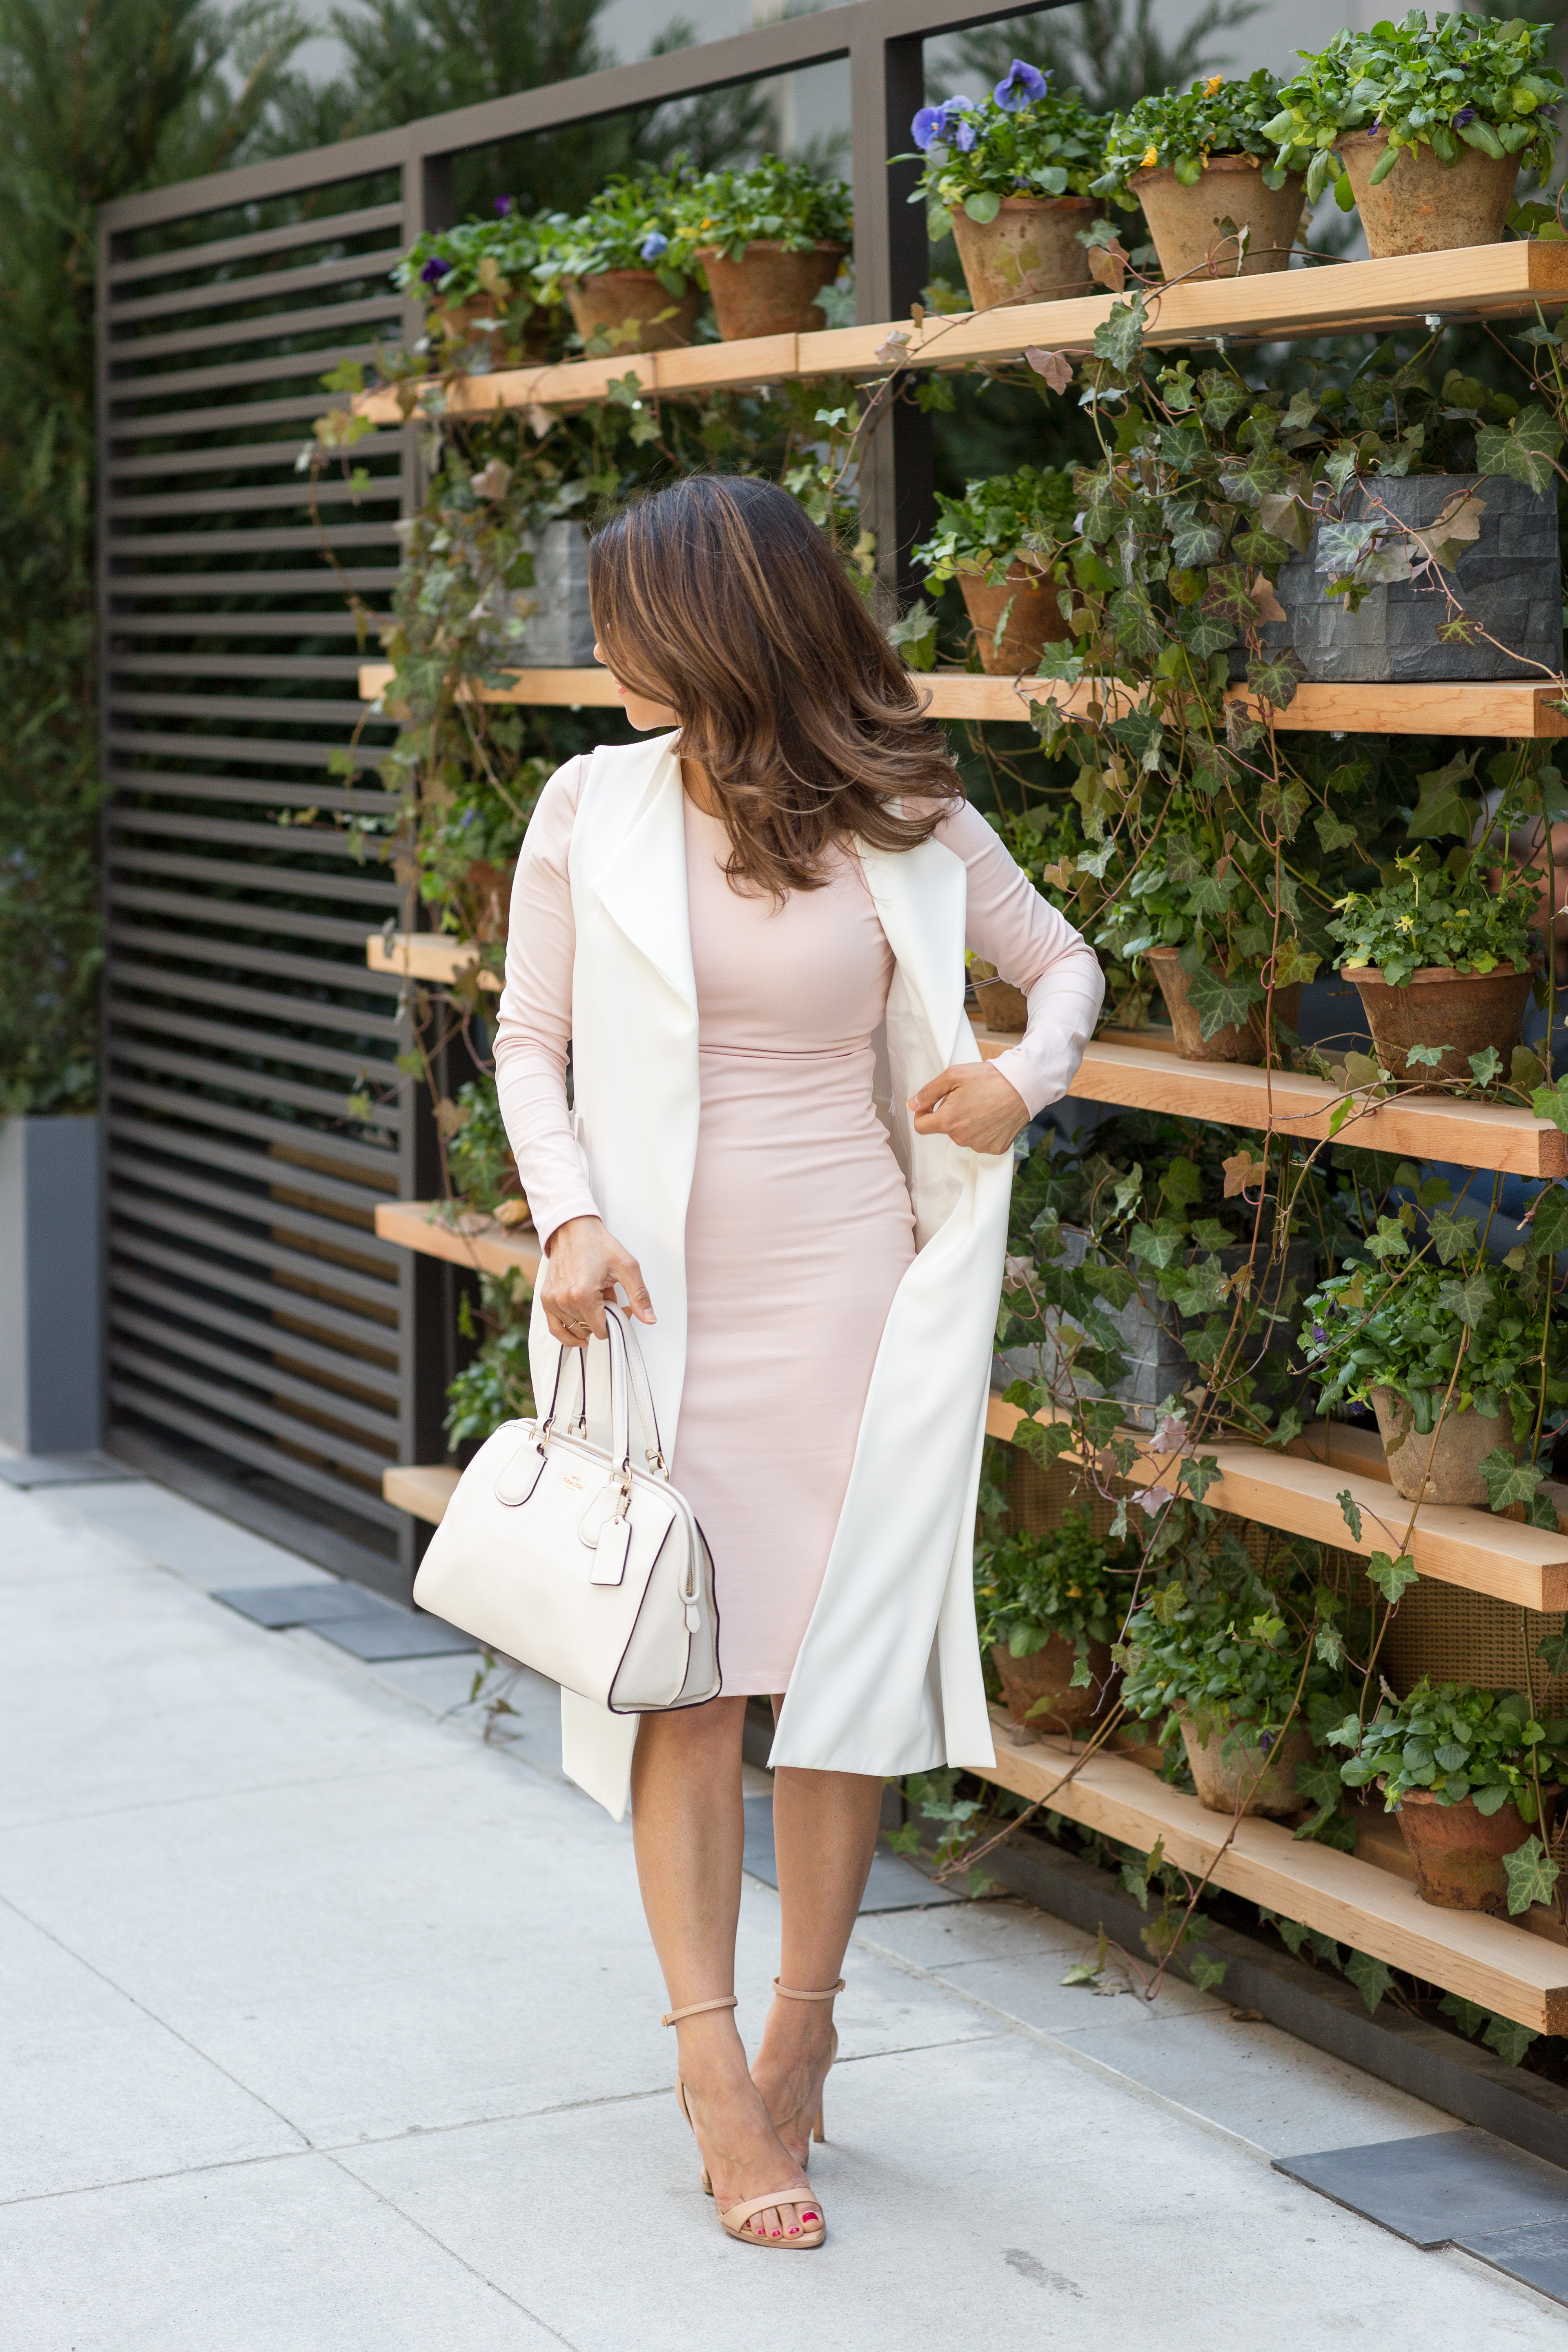 workwear outfit idea for spring wearing blush pink dress, white vest and nude heels